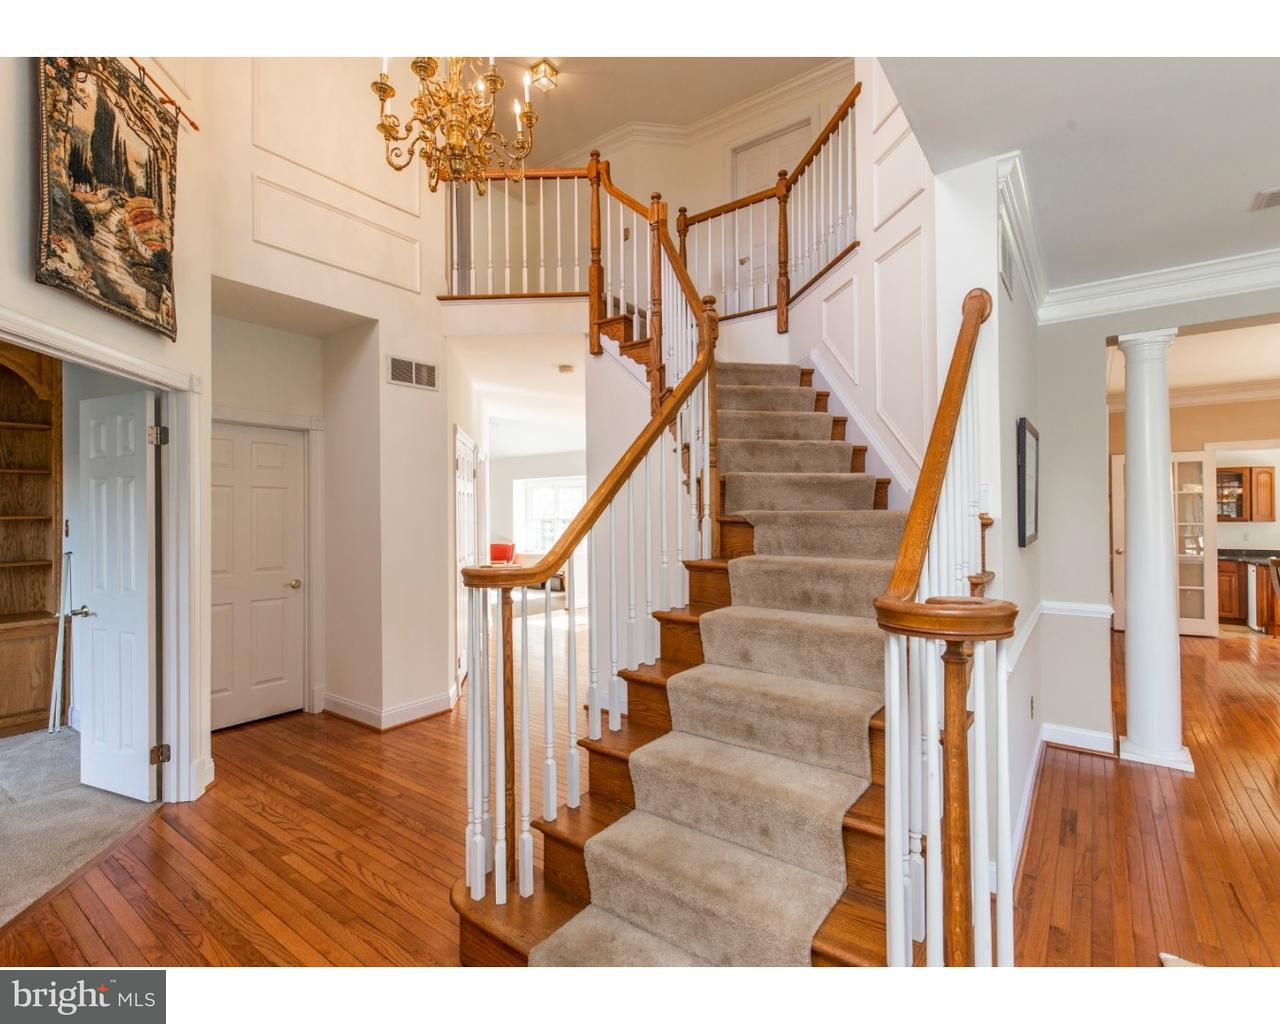 696 MILITIA HILL DR, WEST CHESTER - Listed at $650,000, WEST CHESTER